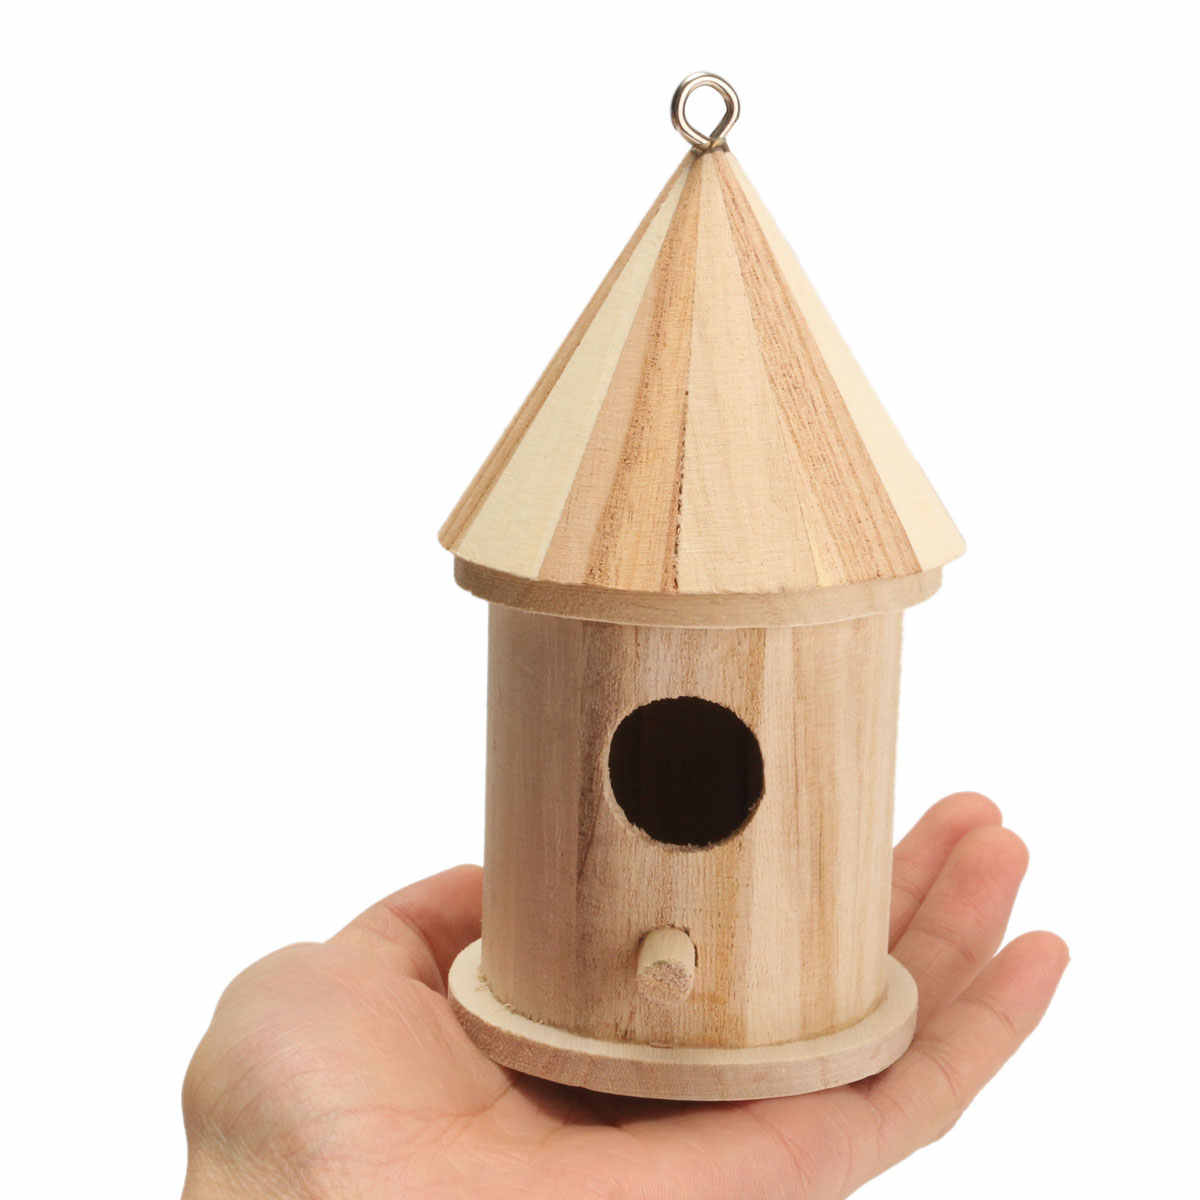 ... Bird House Nest Wooden DIY Birdhouse Hanging Nesting Box Craft For Home Garden Decoration Holiday Gift ...